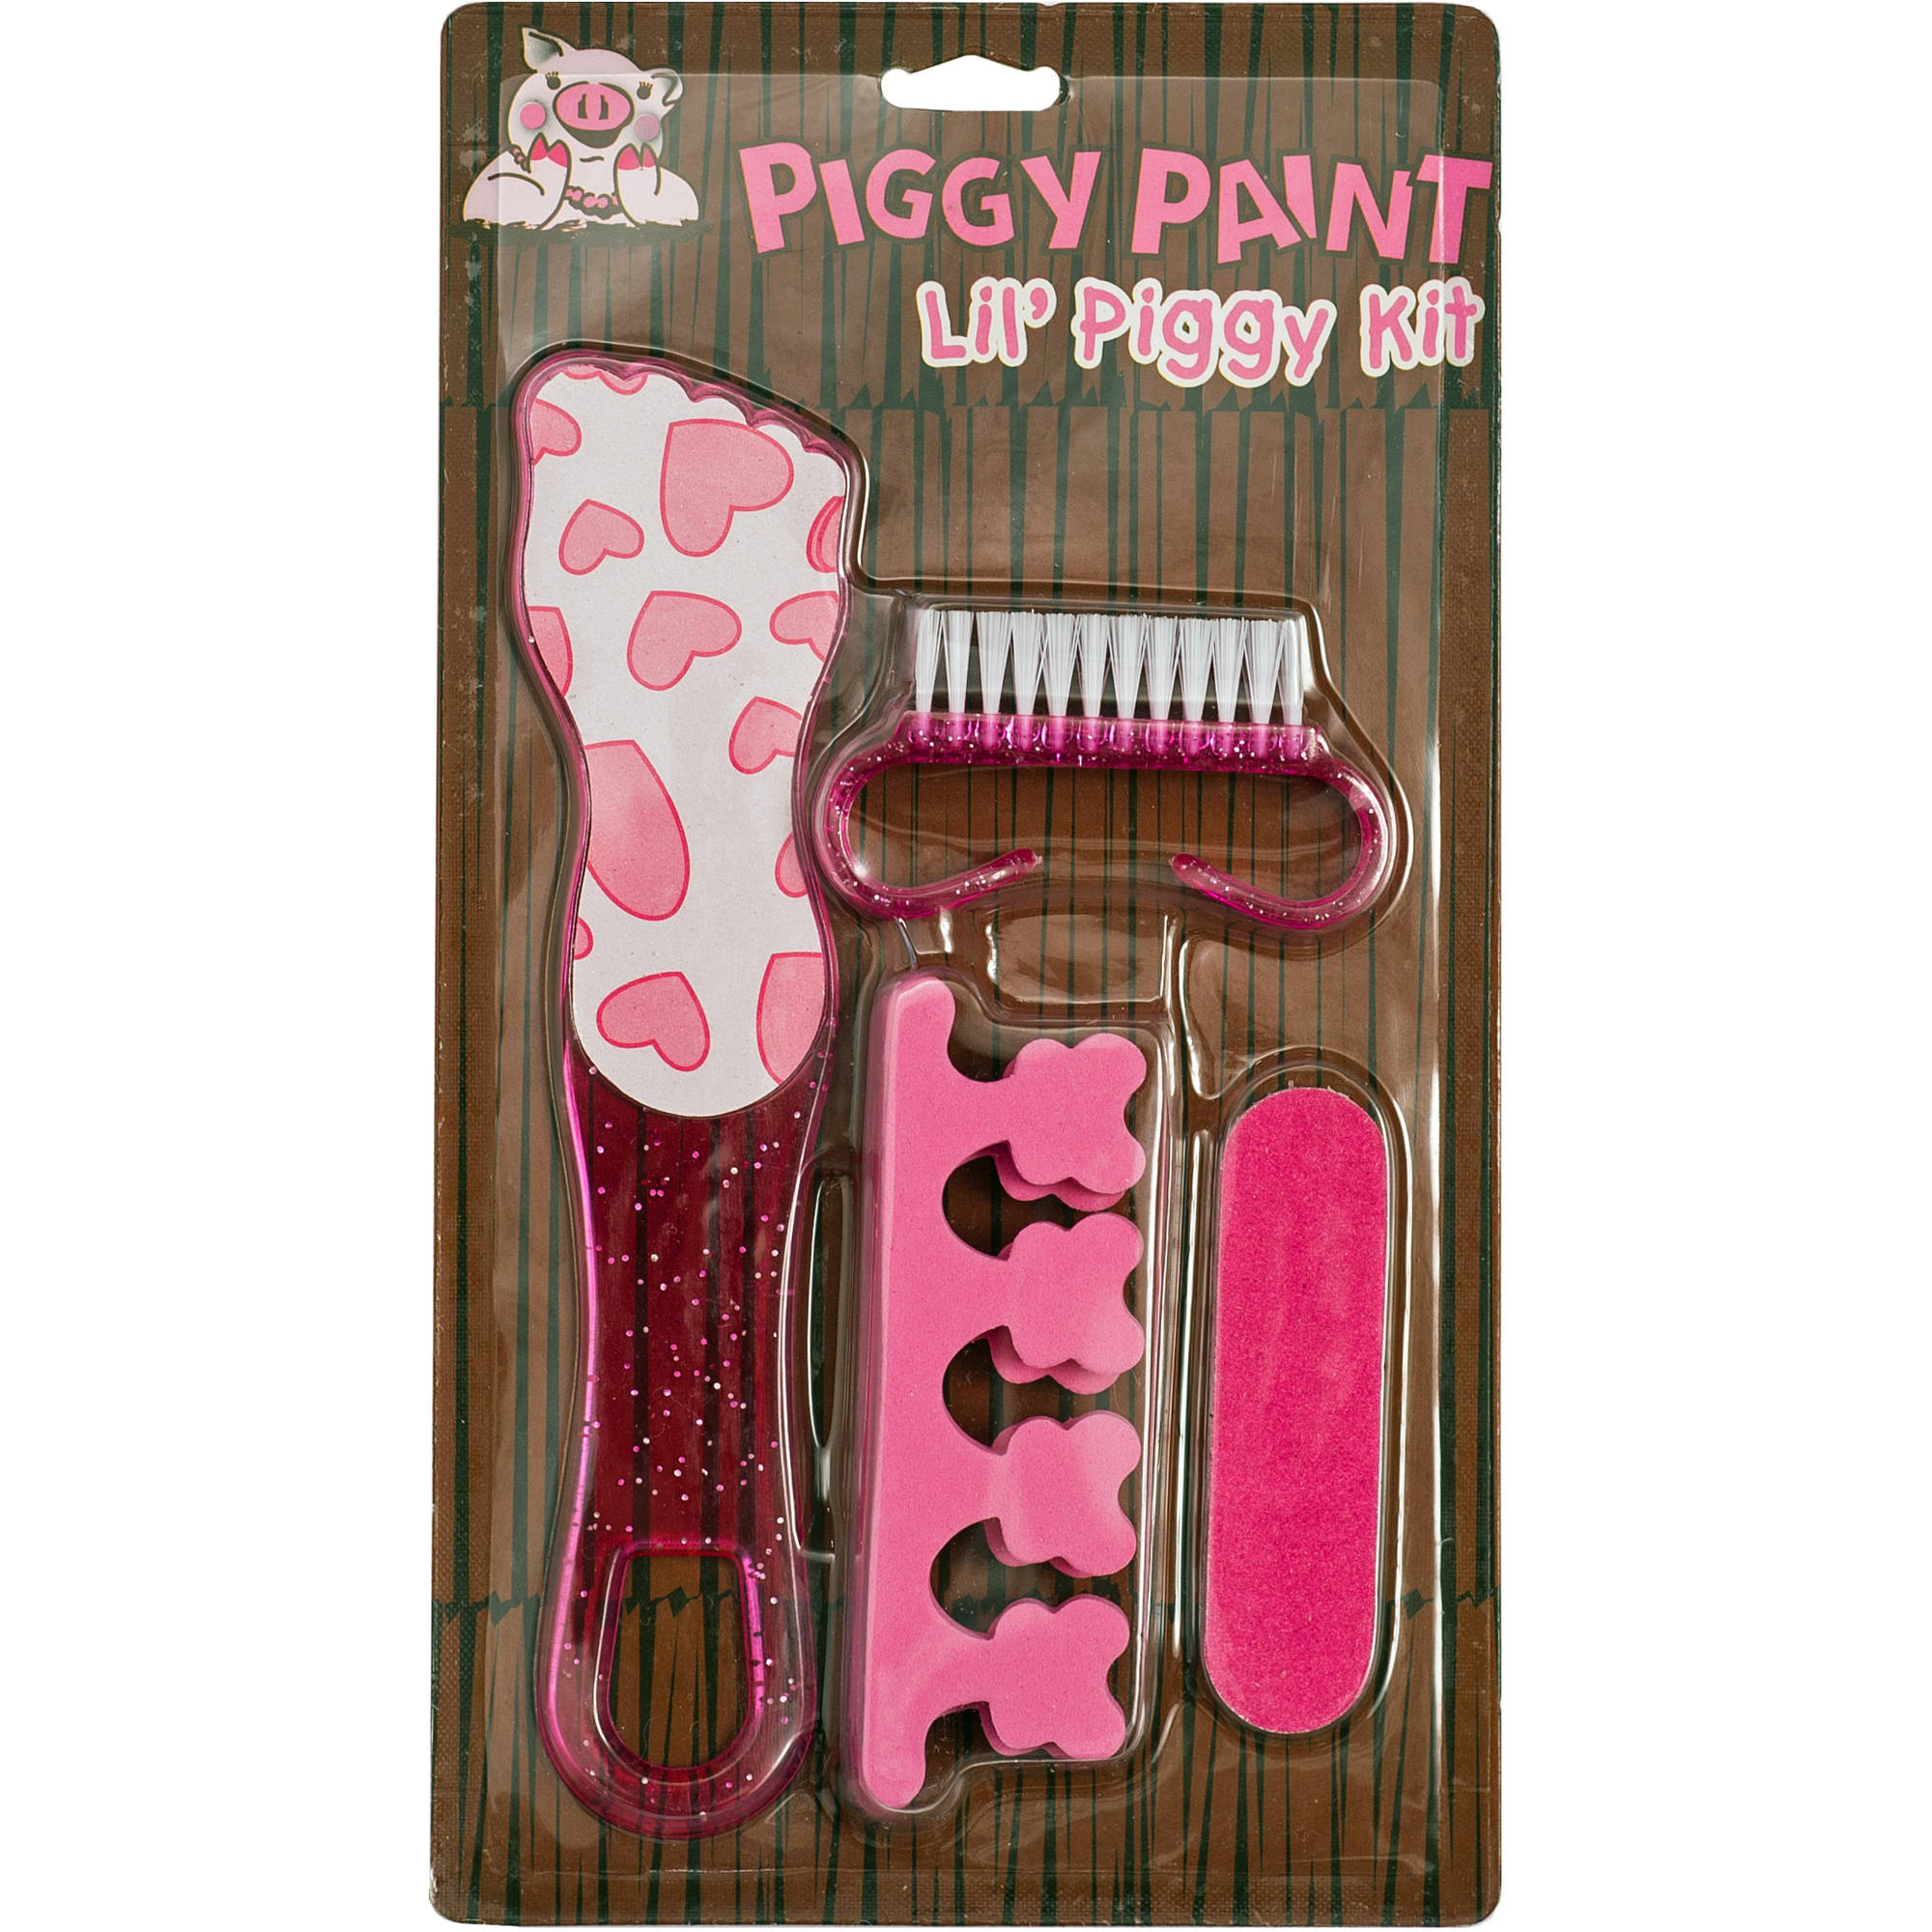 Piggy Paint Lil' Piggy Pedicure Set, 4 pc